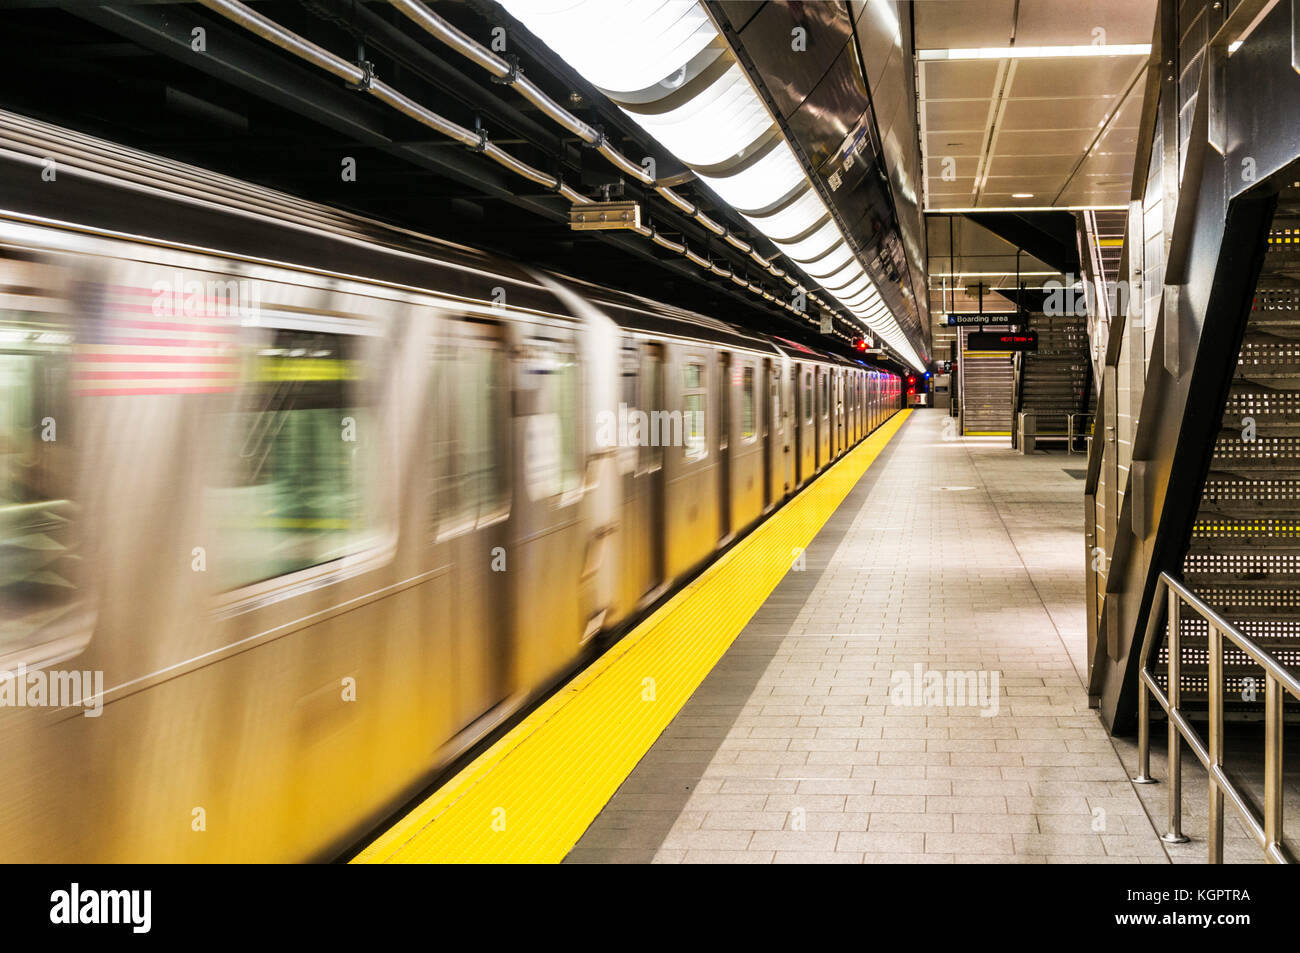 sew york subway train New york usa new york subway train moving through a subway station new york city usa - Stock Image